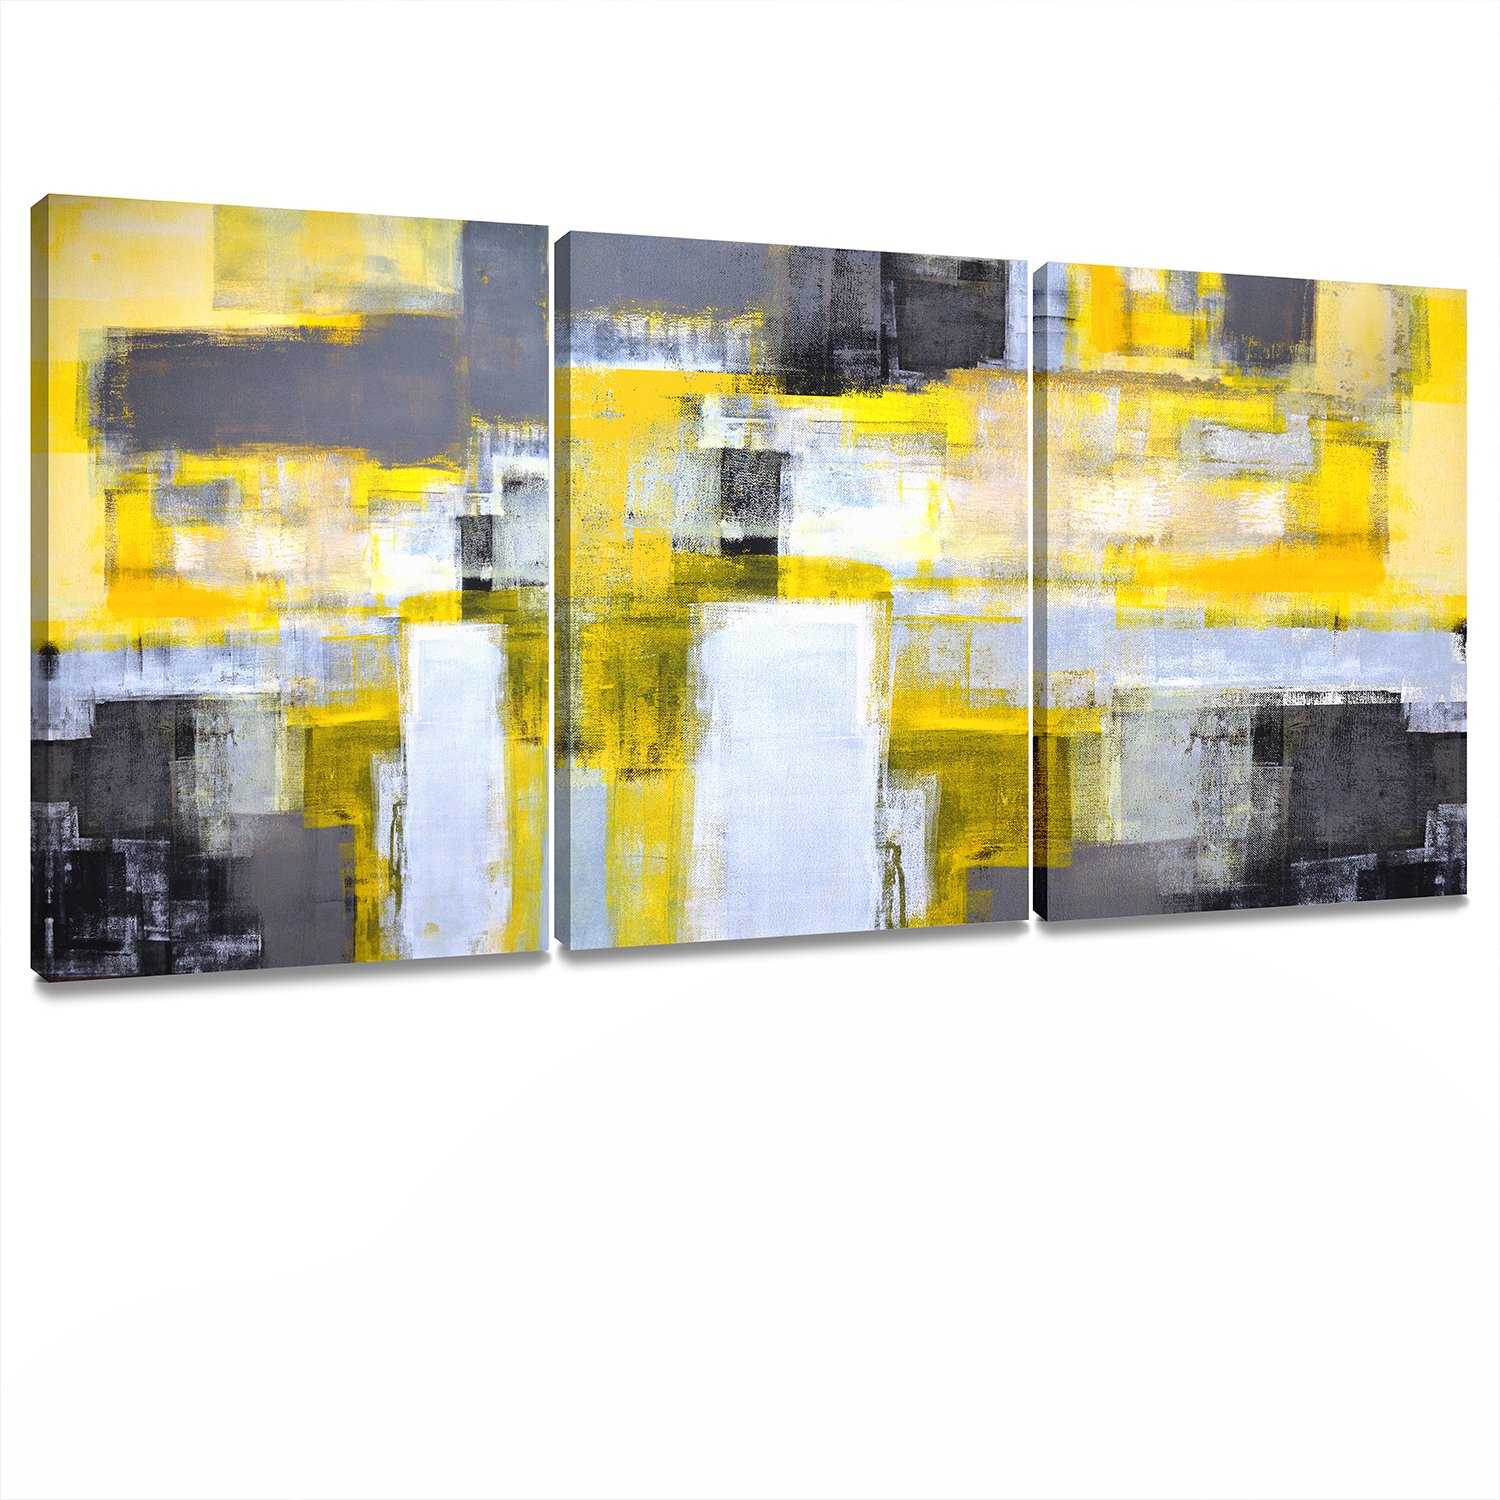 Decor MI Abstract Canvas Wall Art Paintings on Canvas for Wall Decoration Modern Artwork Wall Decor Ready to Hang 12''x16'' 3 Piece Canvas Art